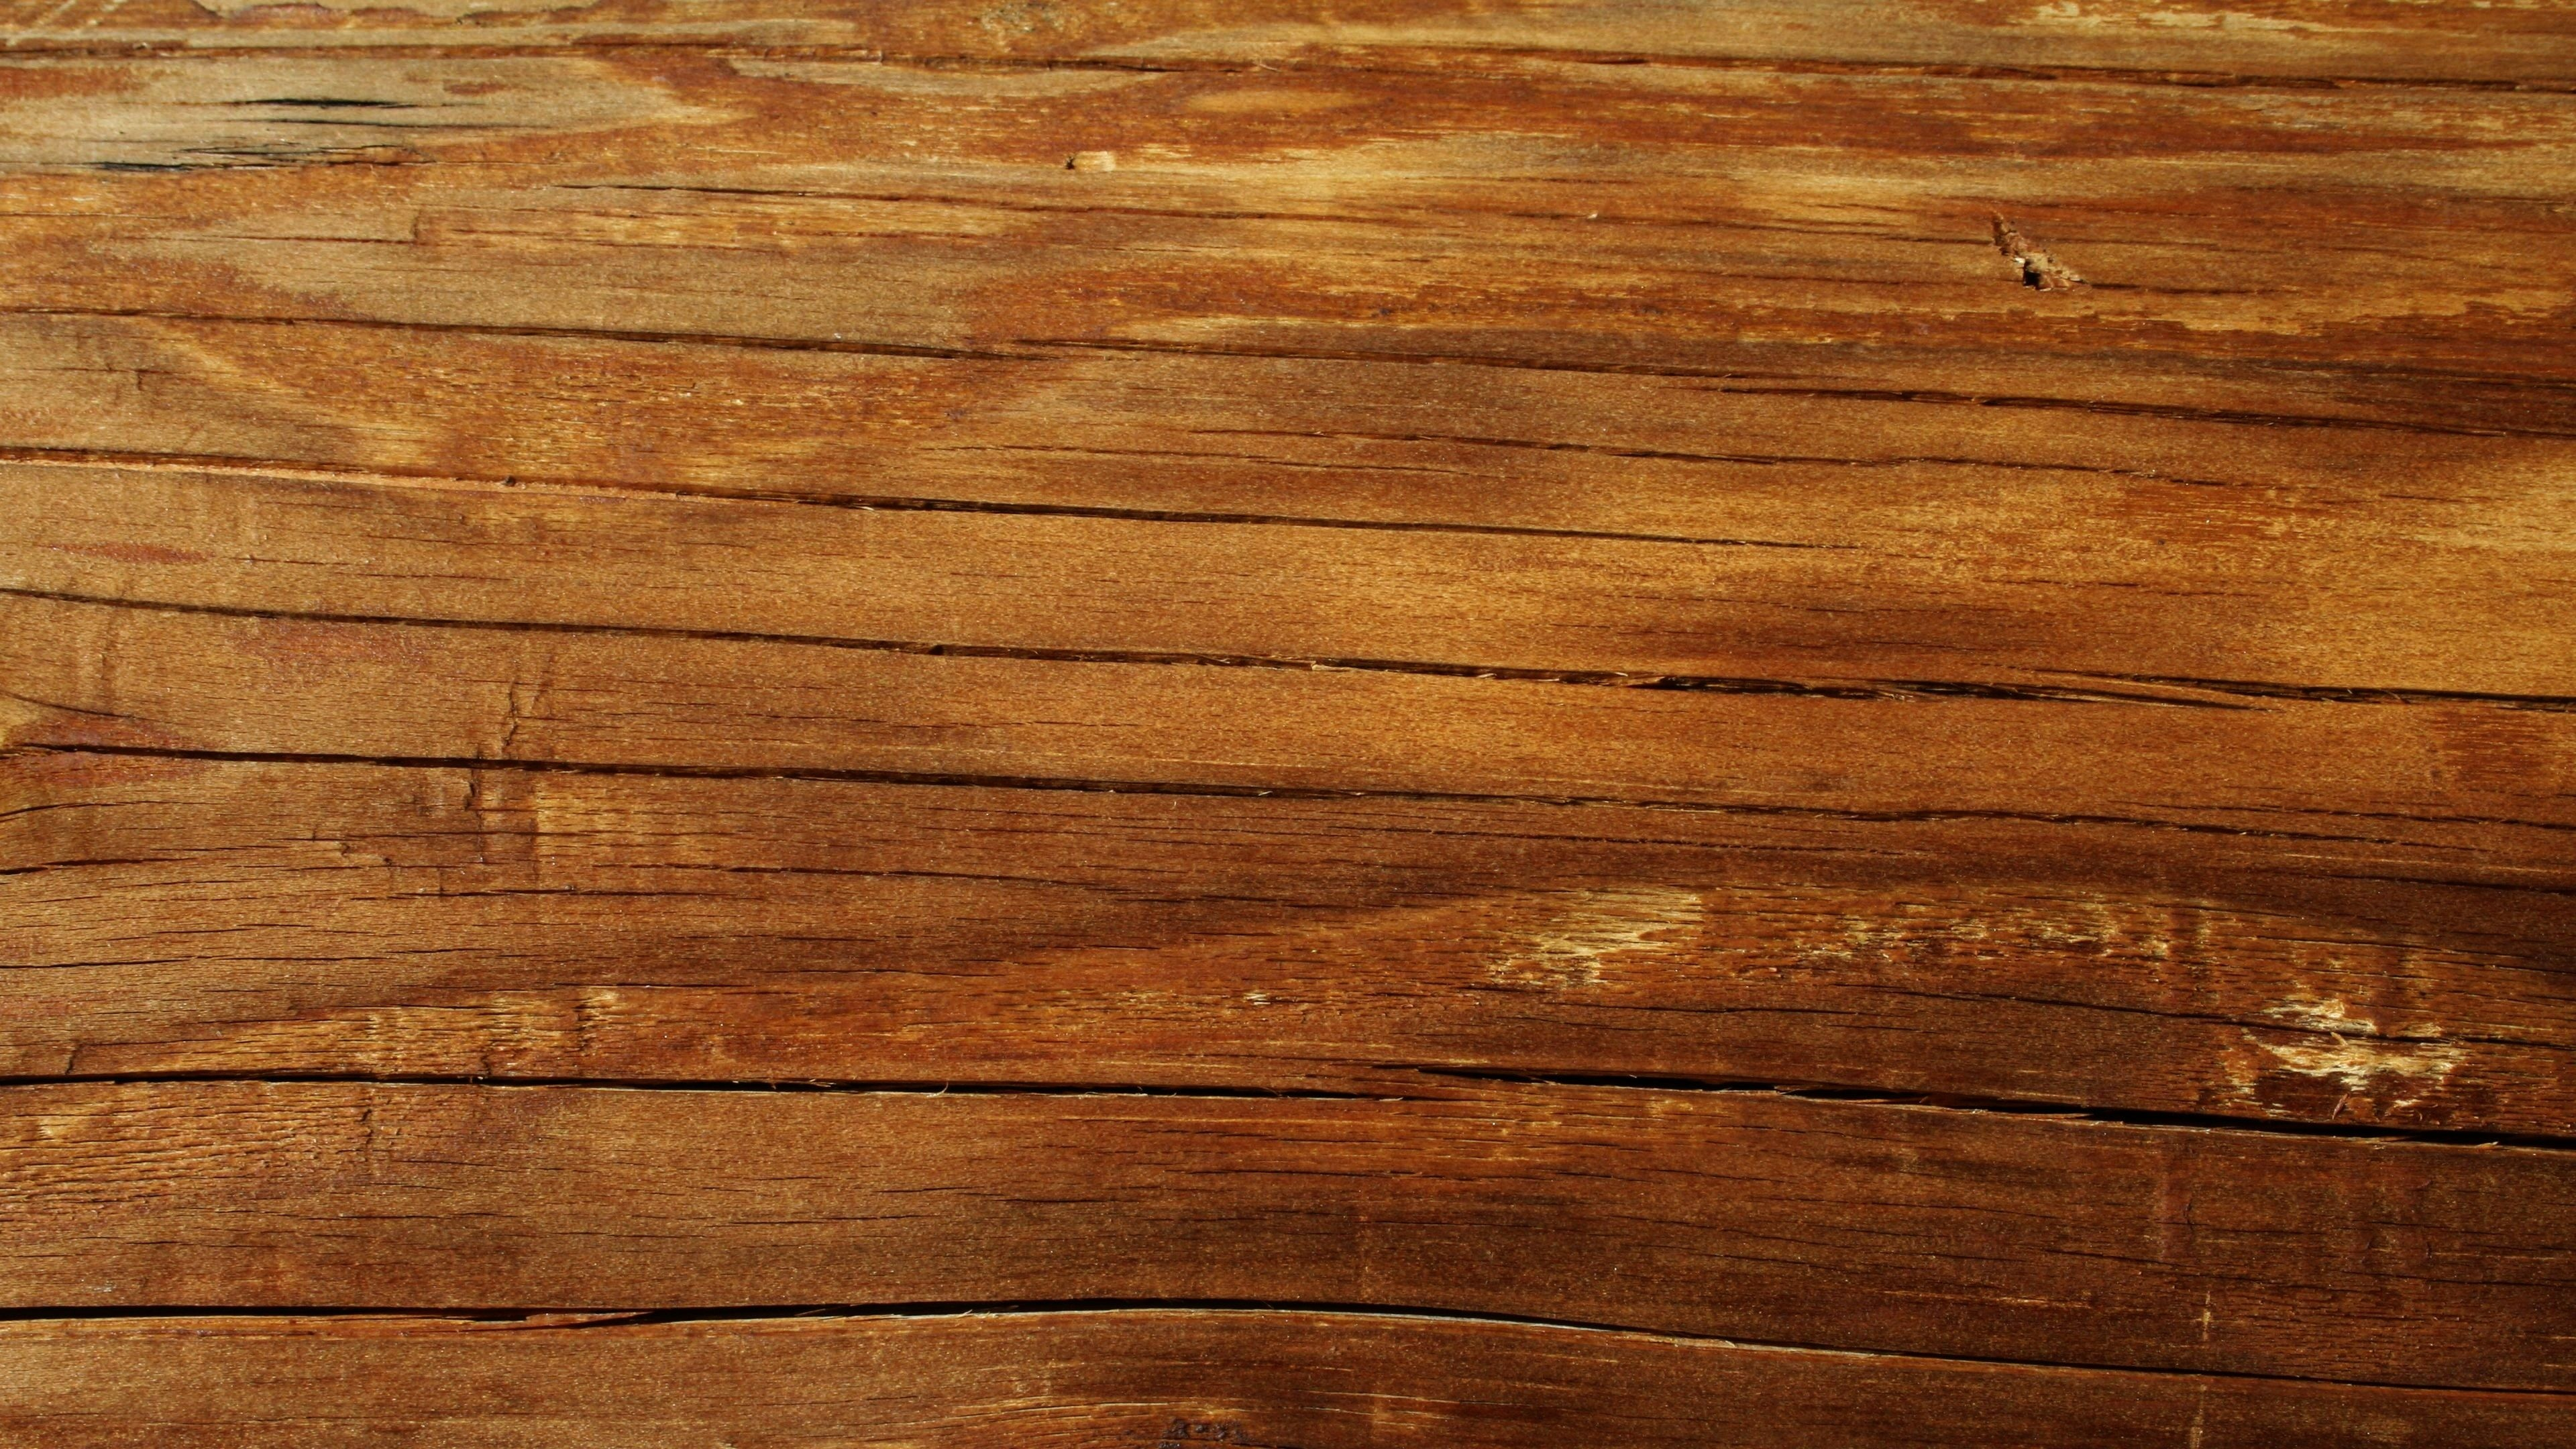 Wooden Plank Wallpaper 36 images 3840x2160